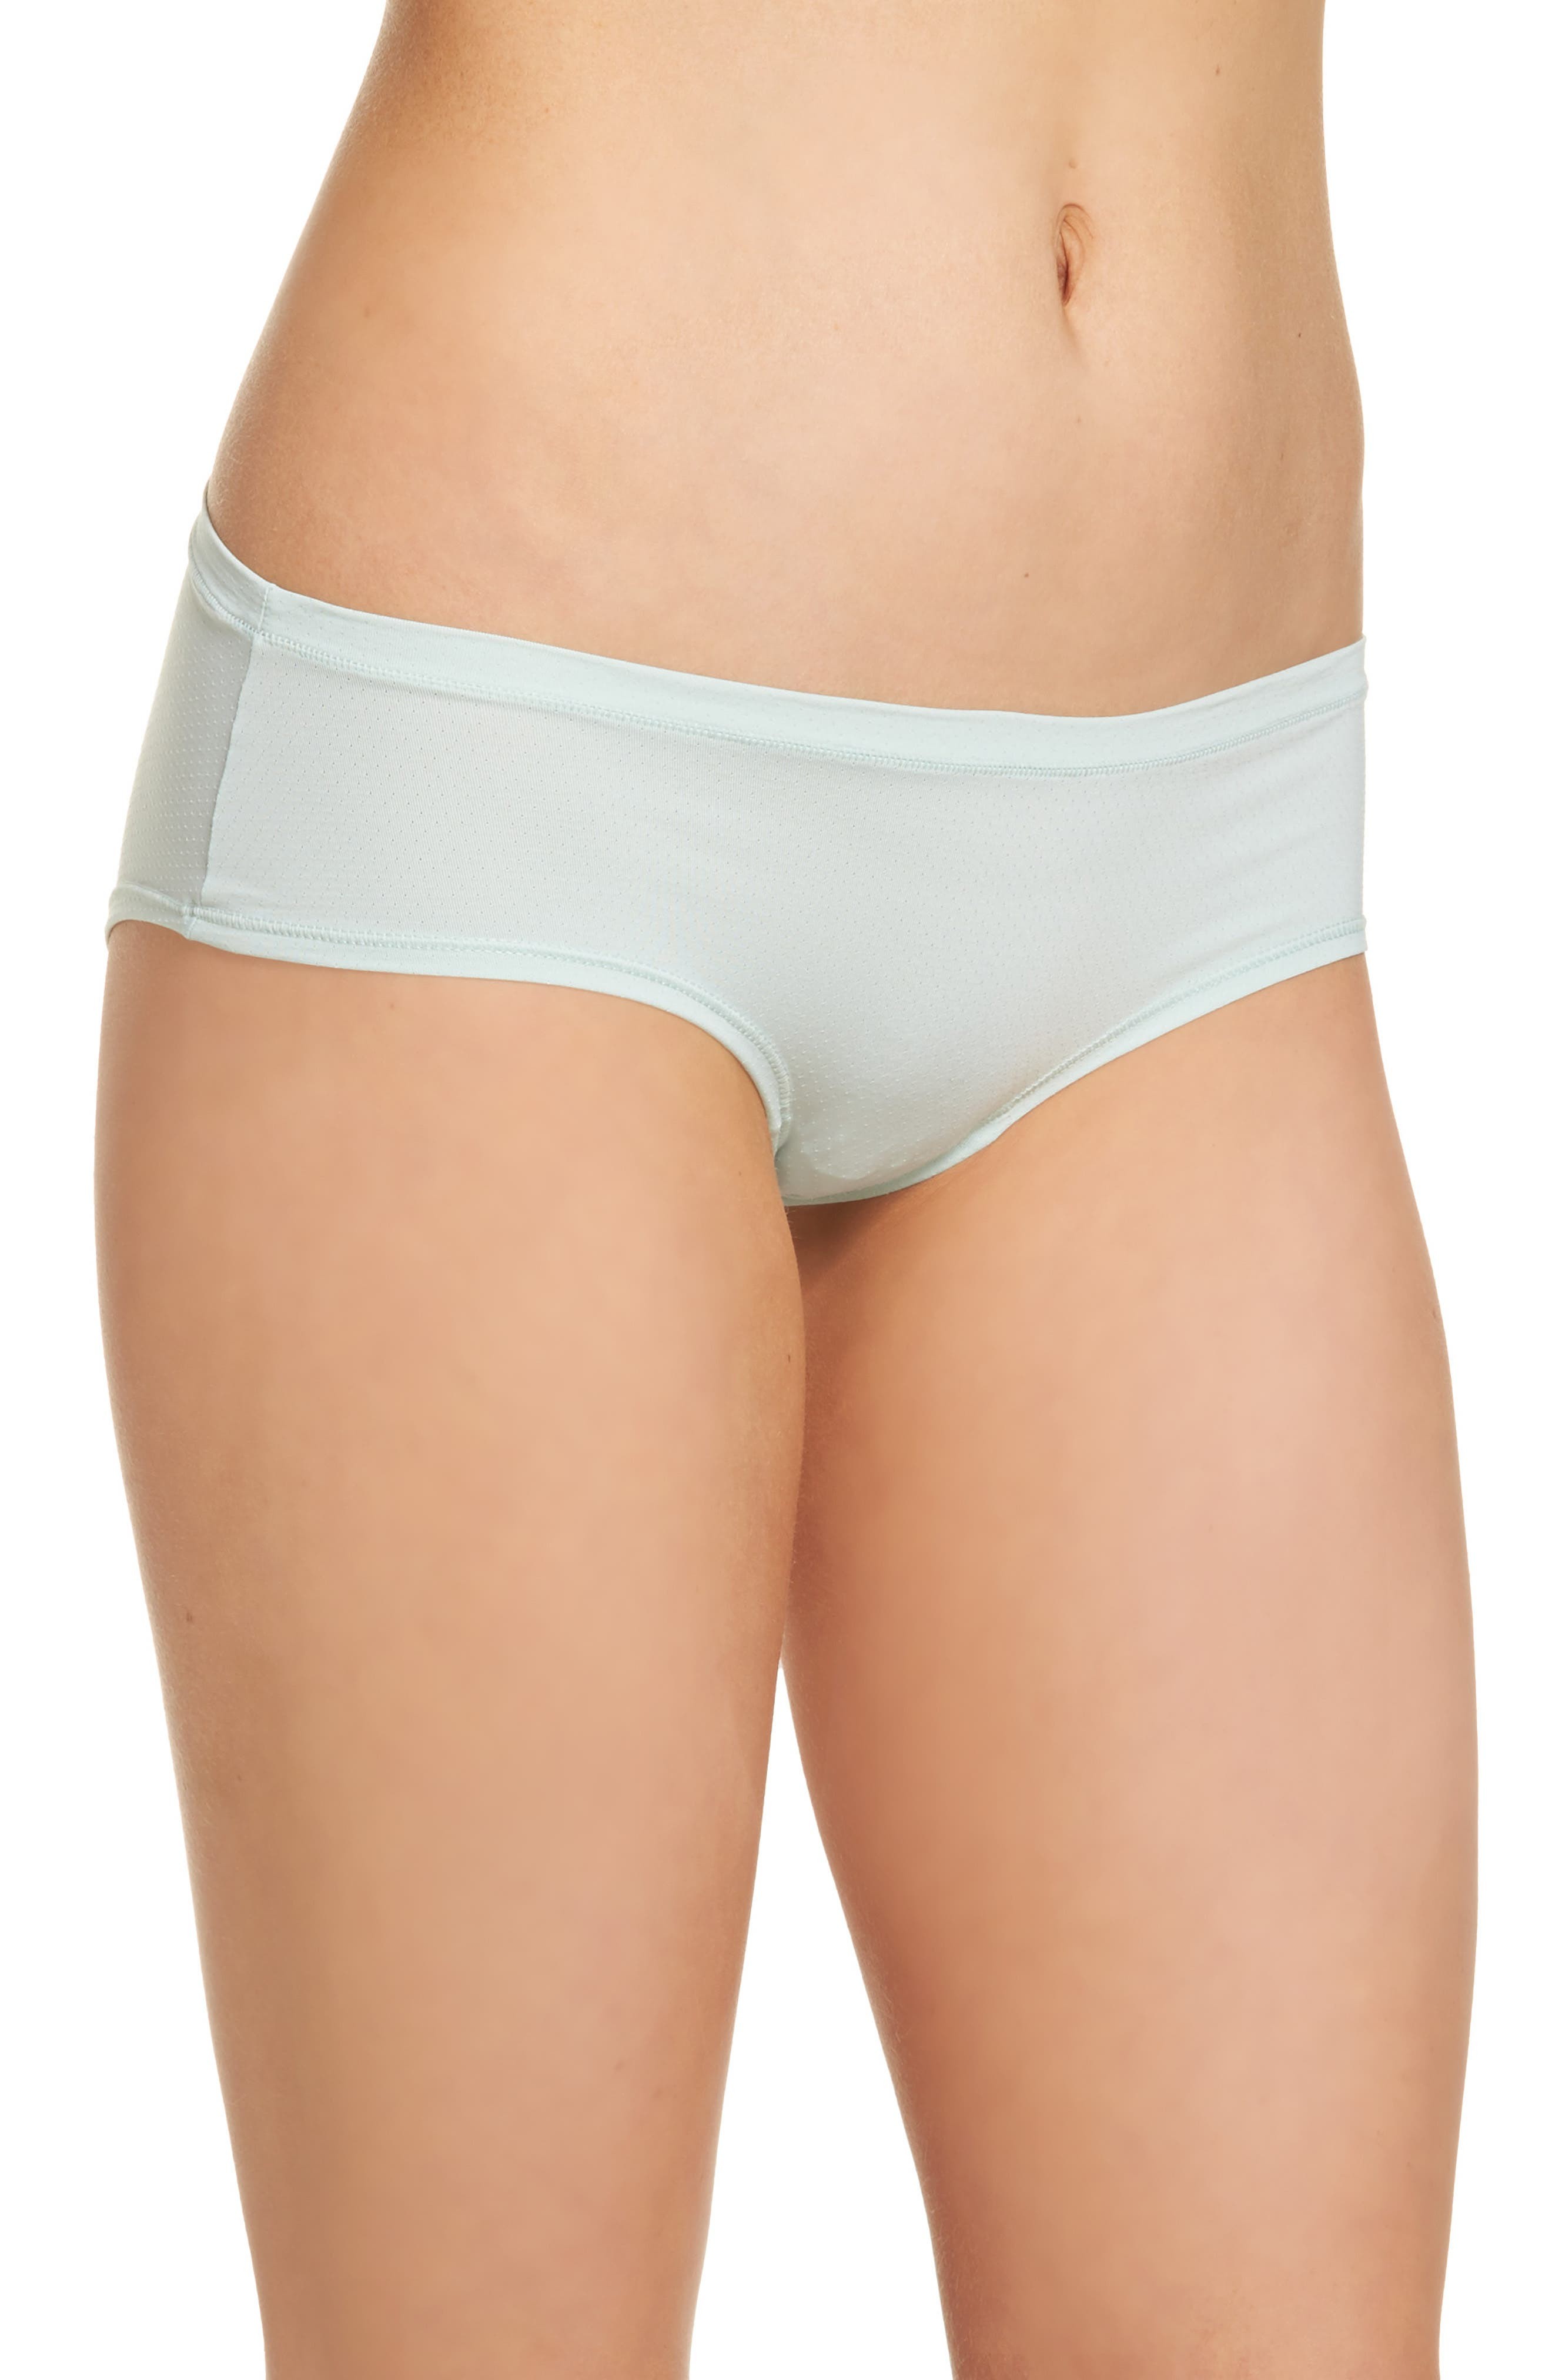 Alternate Image 3  - Zella Body Active Mesh Hipster Briefs (3 for $33)